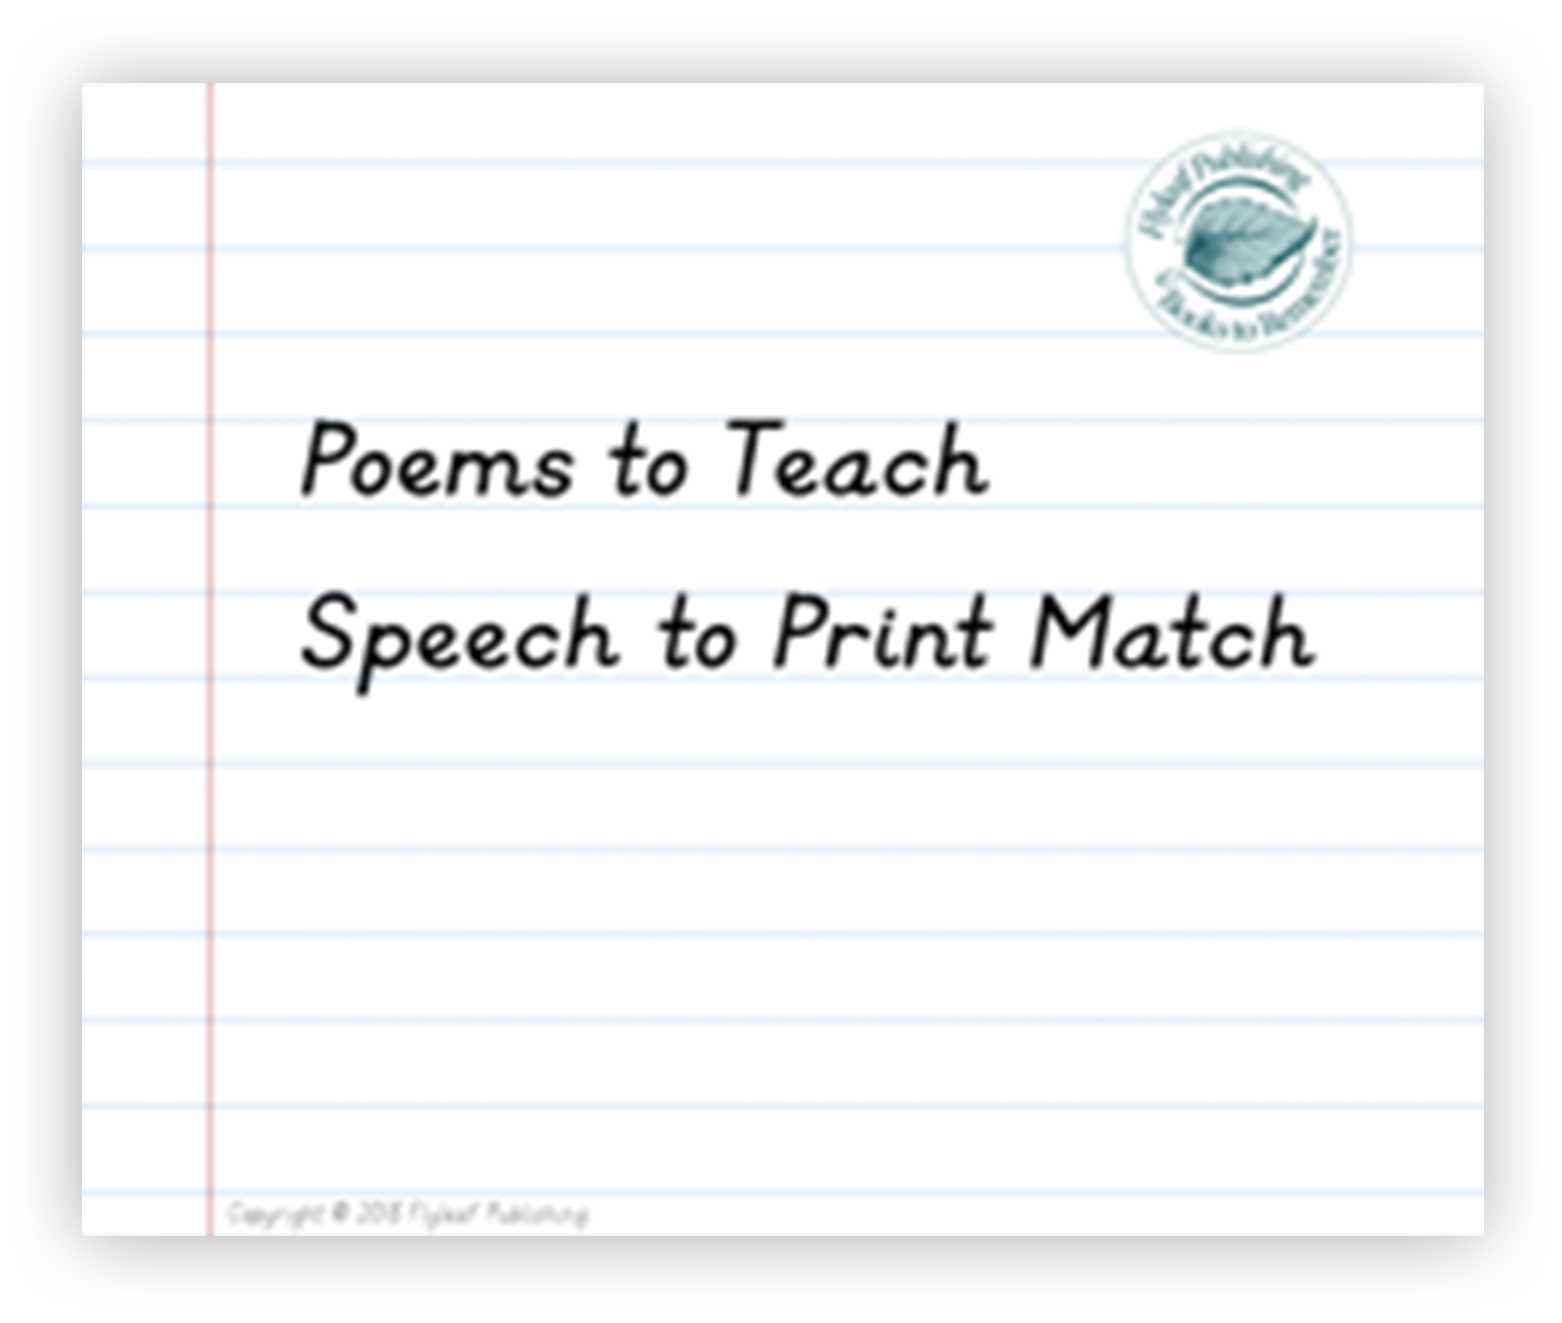 poems-to-teach-speech-to-print-match.png